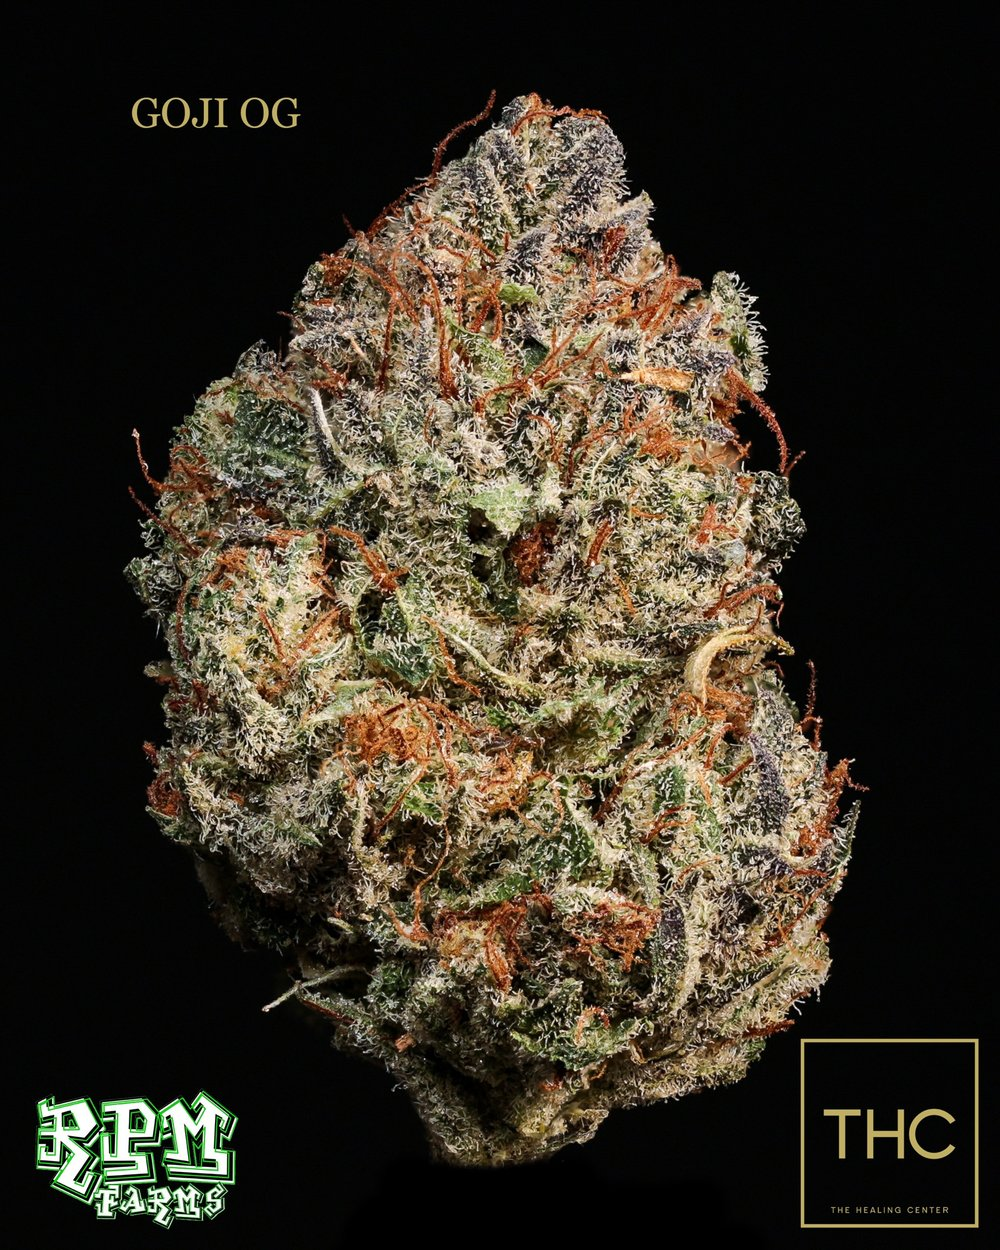 Goji OG RPM Farms THC.jpg